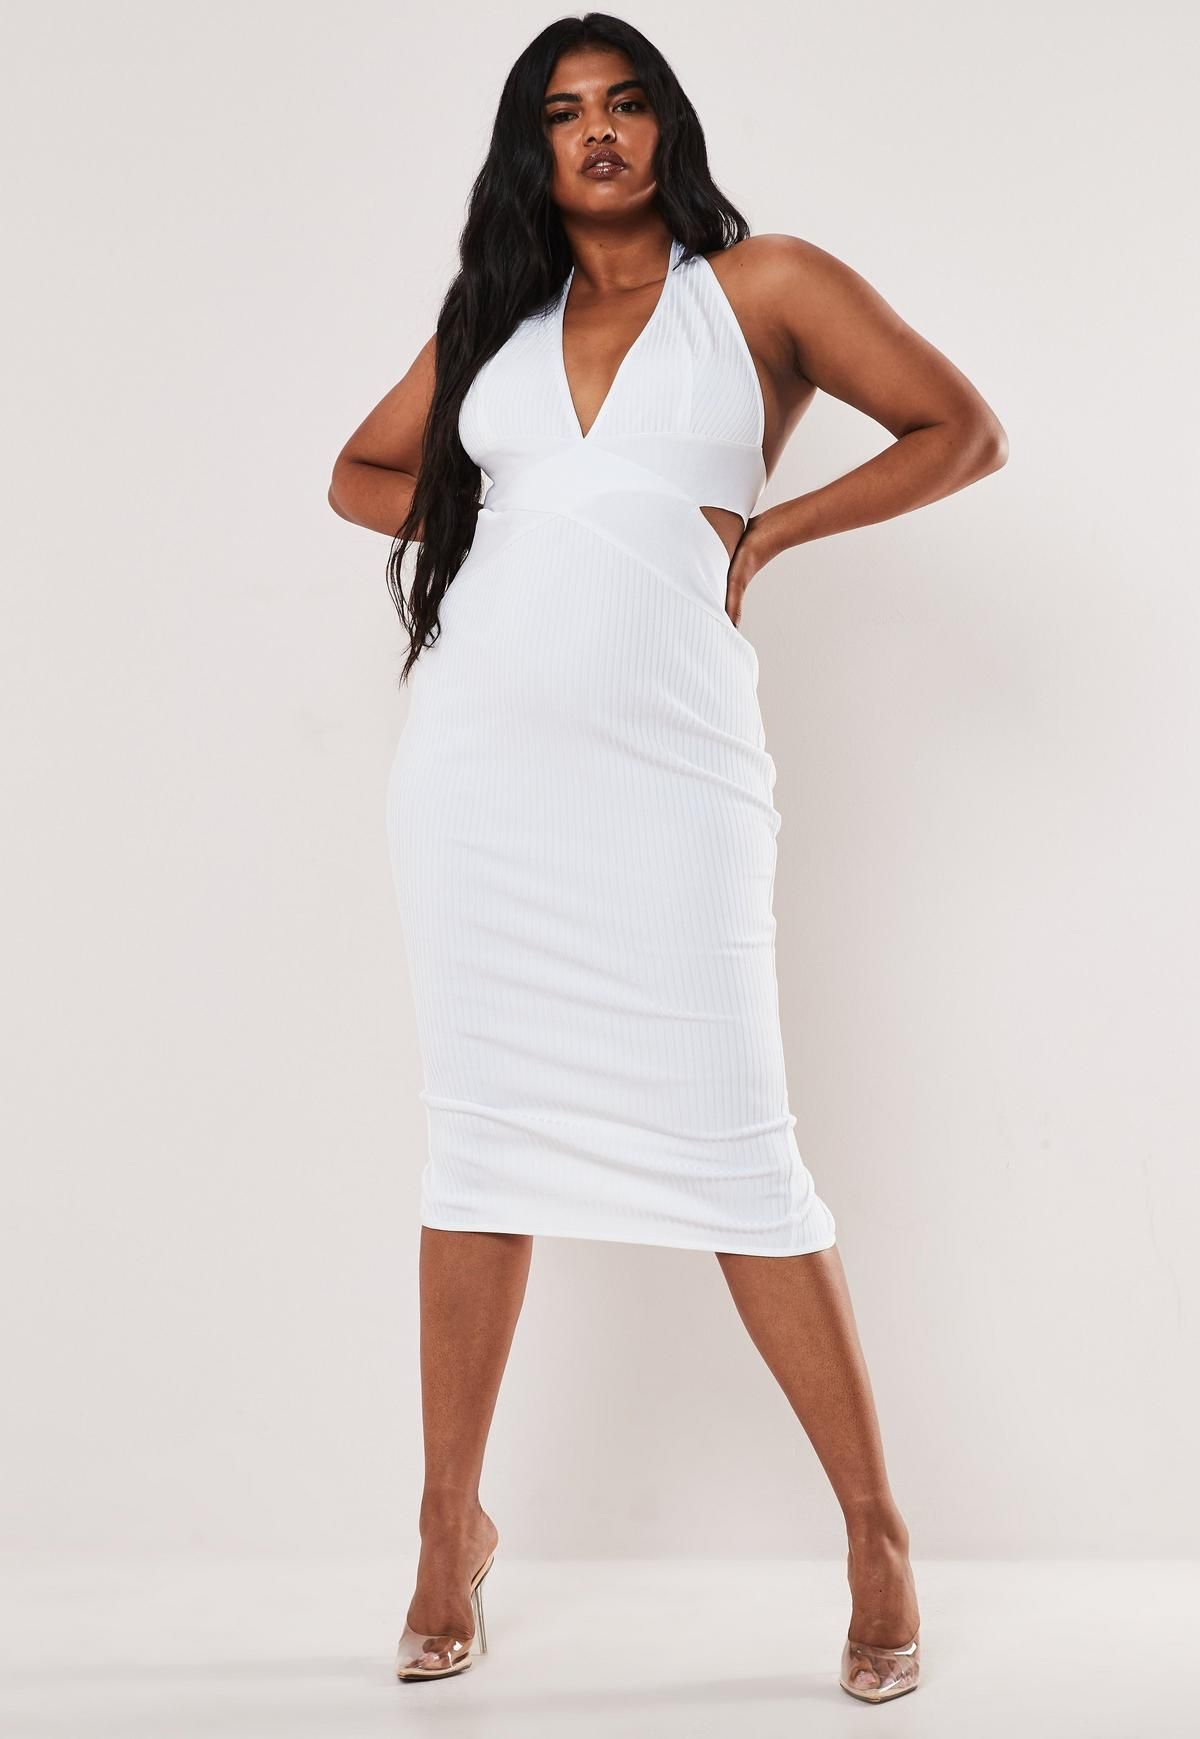 Plus Size White Halterneck Bandage Midaxi Dress